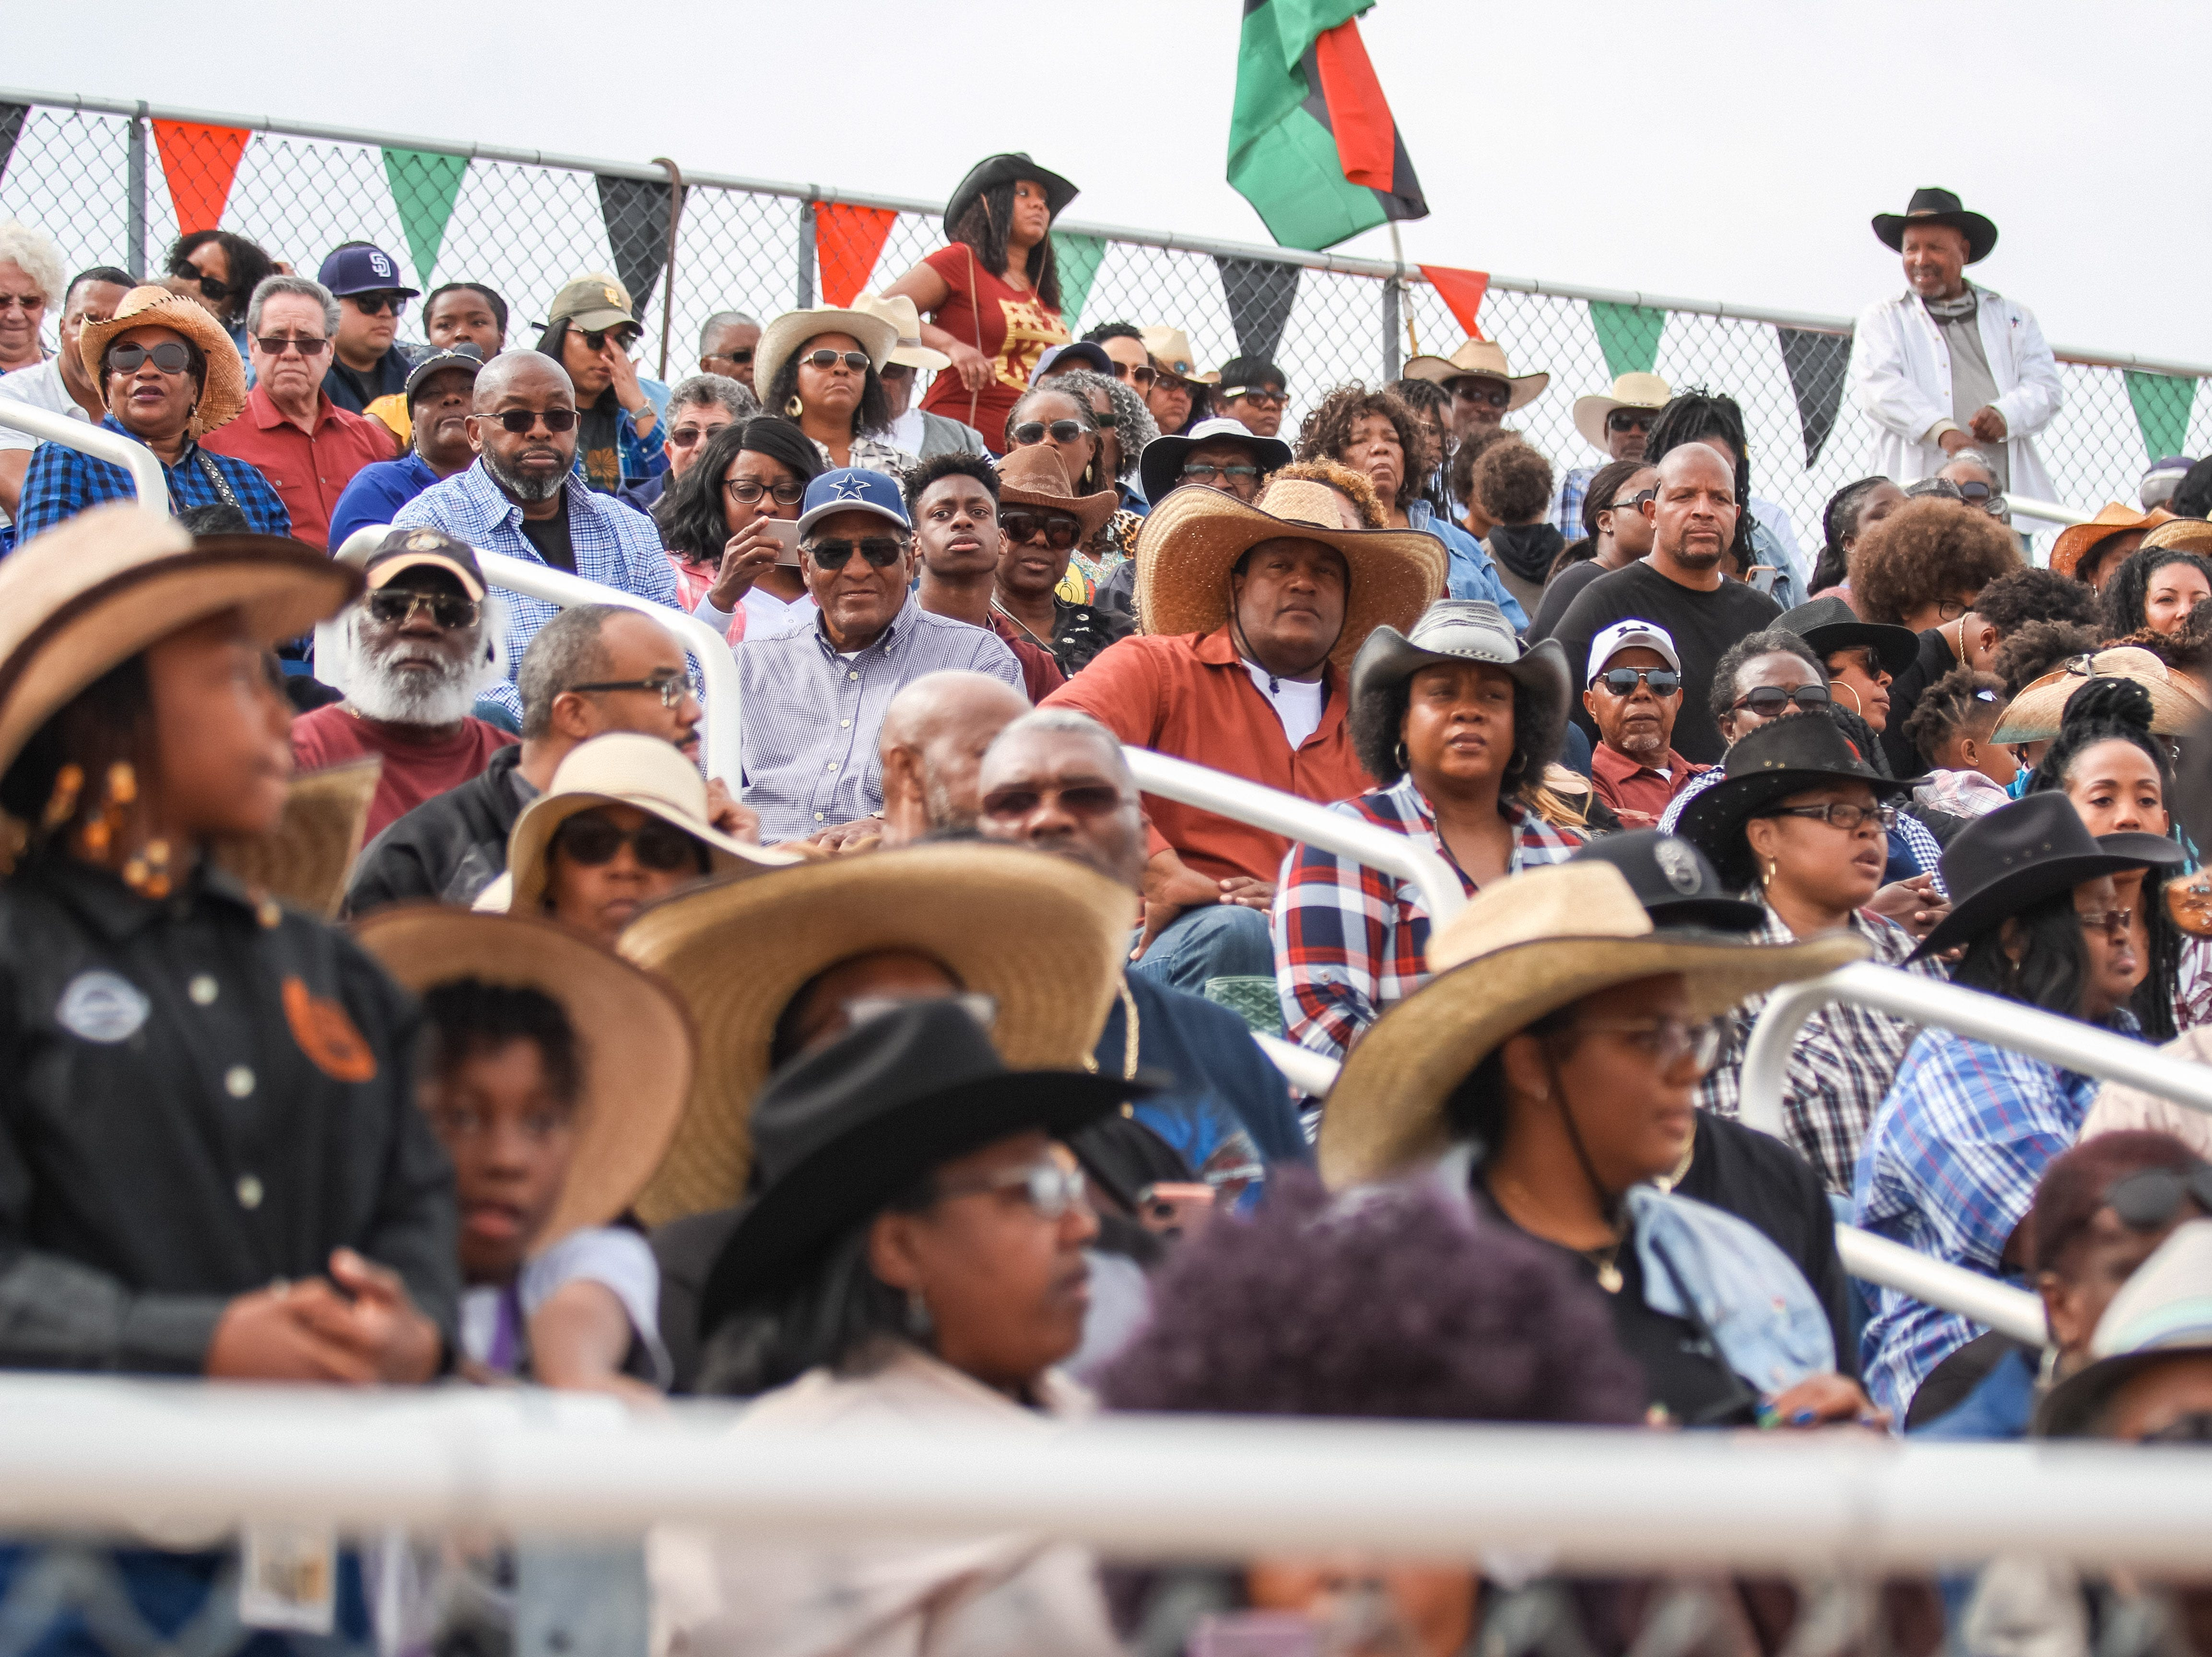 People gather to watch the Arizona Black Rodeo in Chandler, Arizona on Saturday, March 9, 2019.